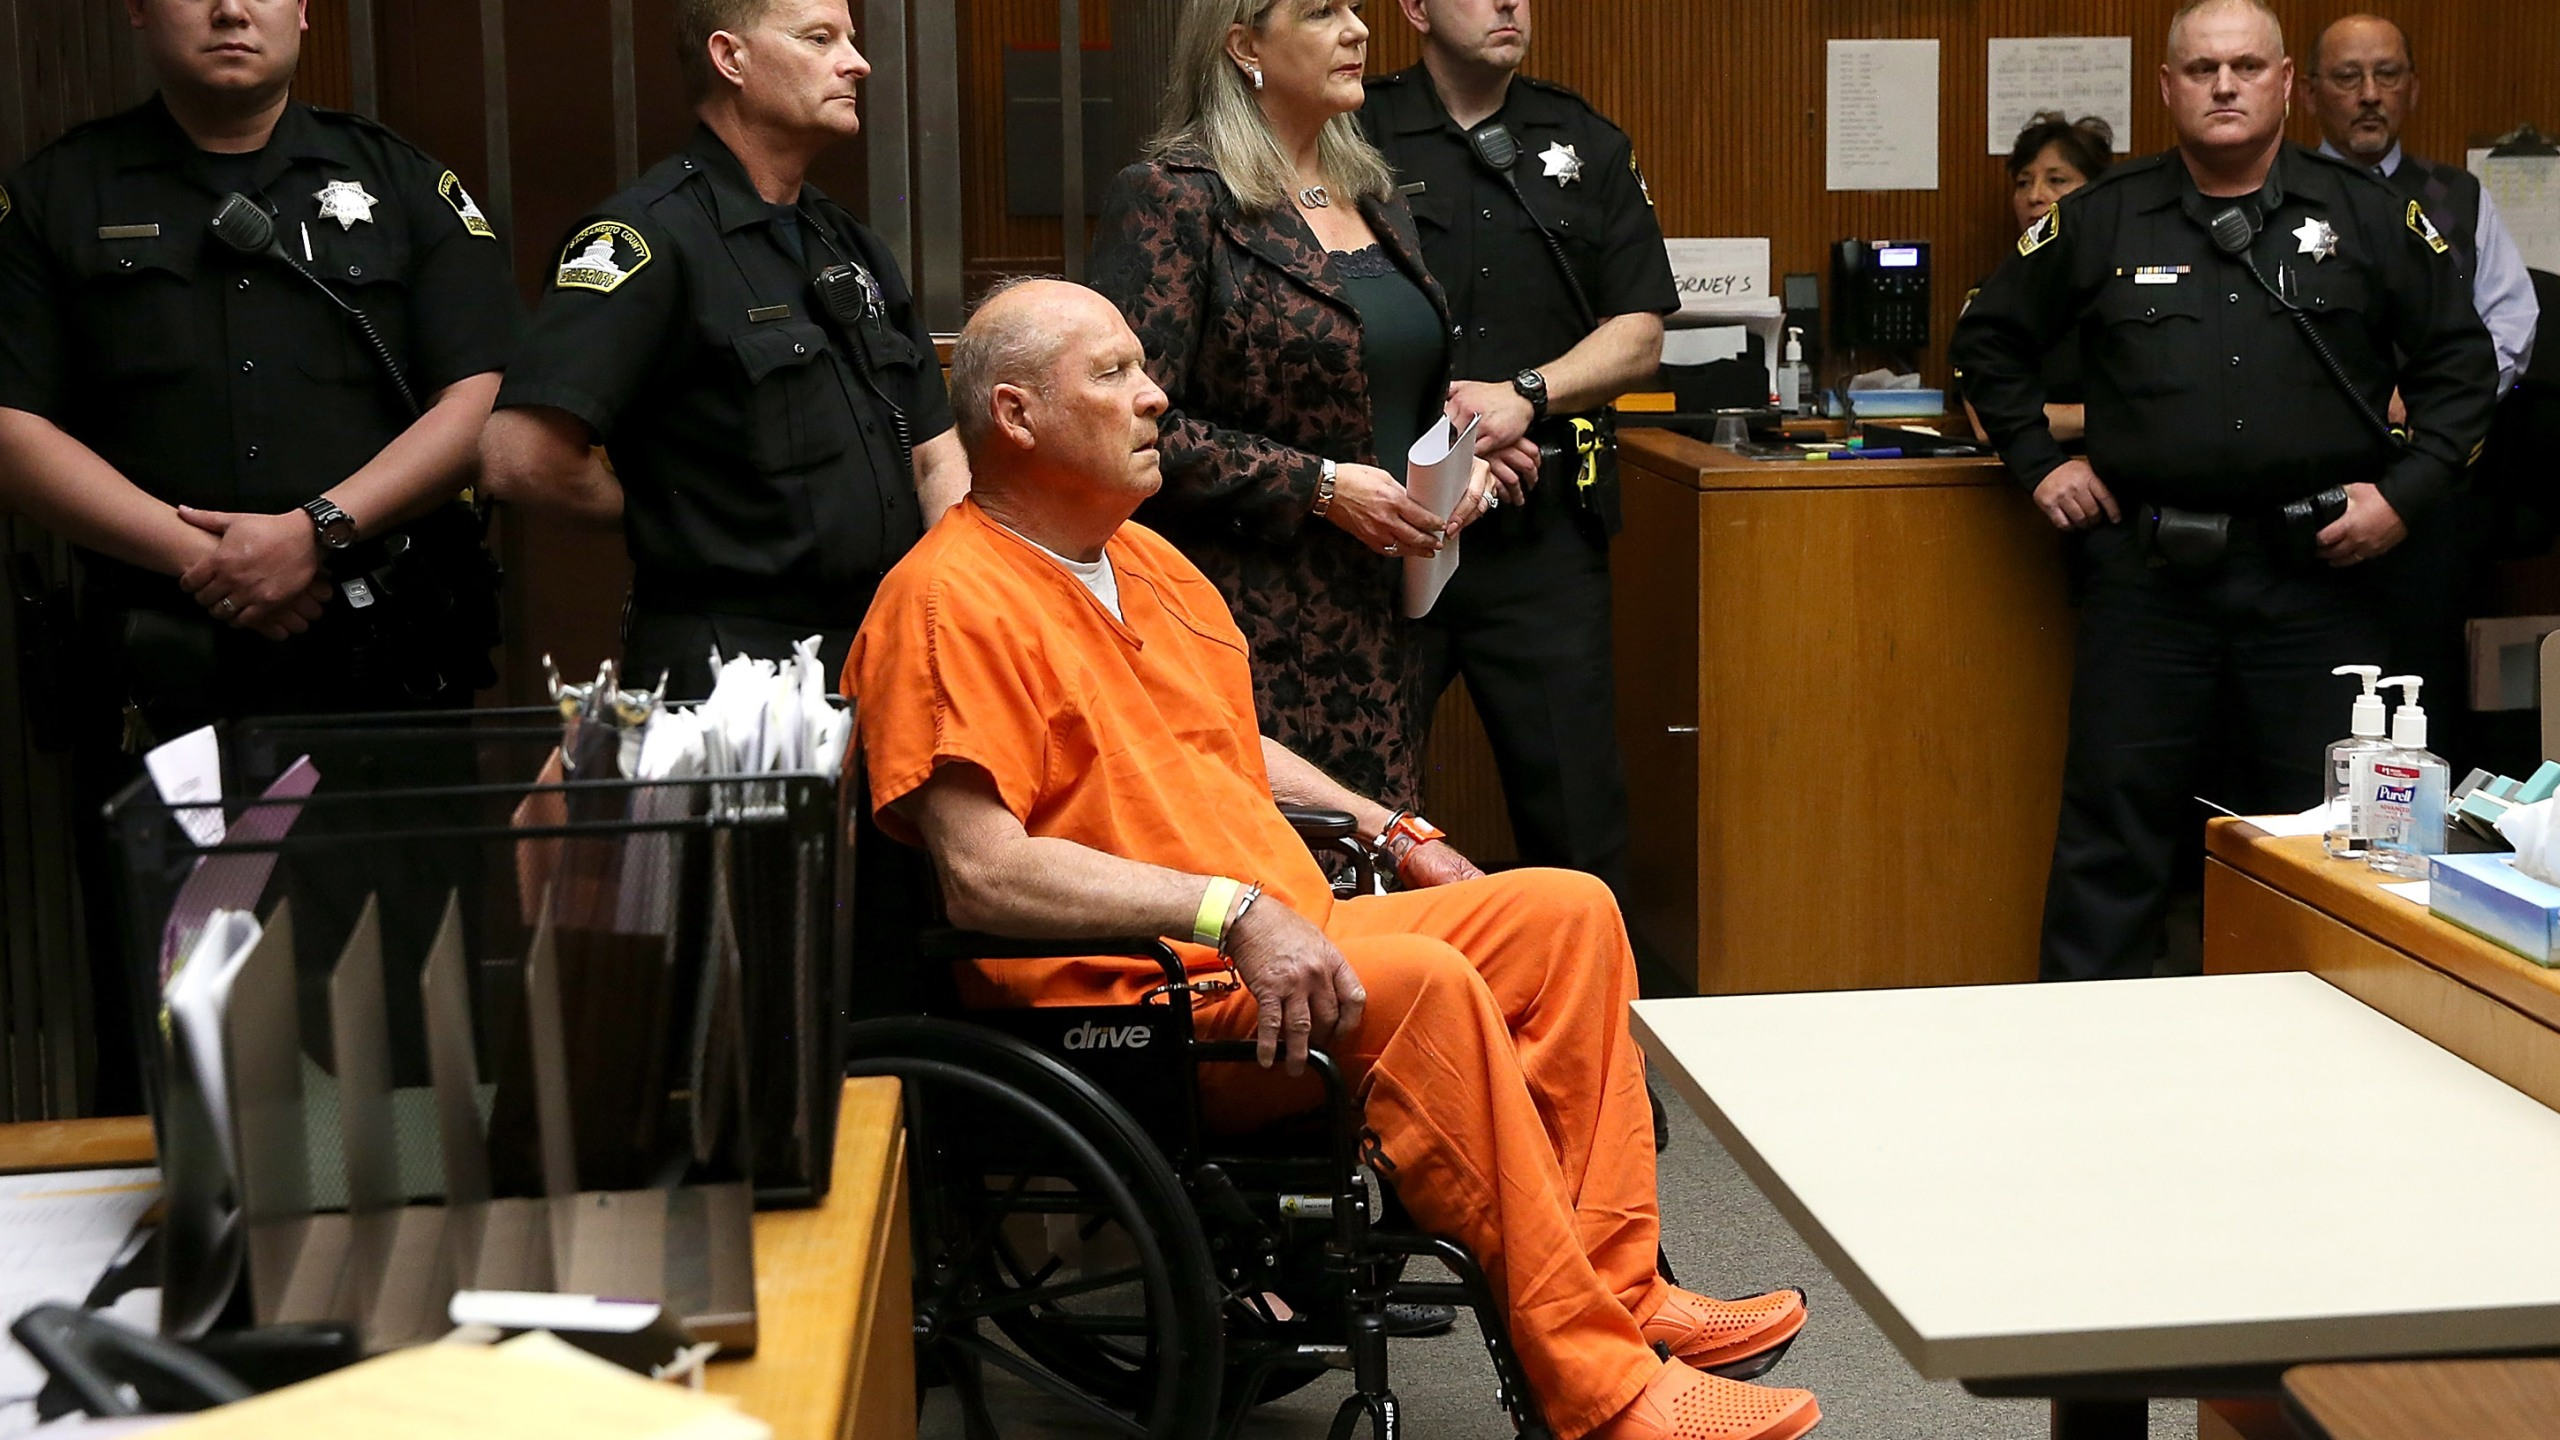 """Joseph James DeAngelo, the suspected """"Golden State Killer,"""" appears in court for his arraignment on April 27, 2018, in Sacramento. (Credit: Justin Sullivan/Getty Images)"""